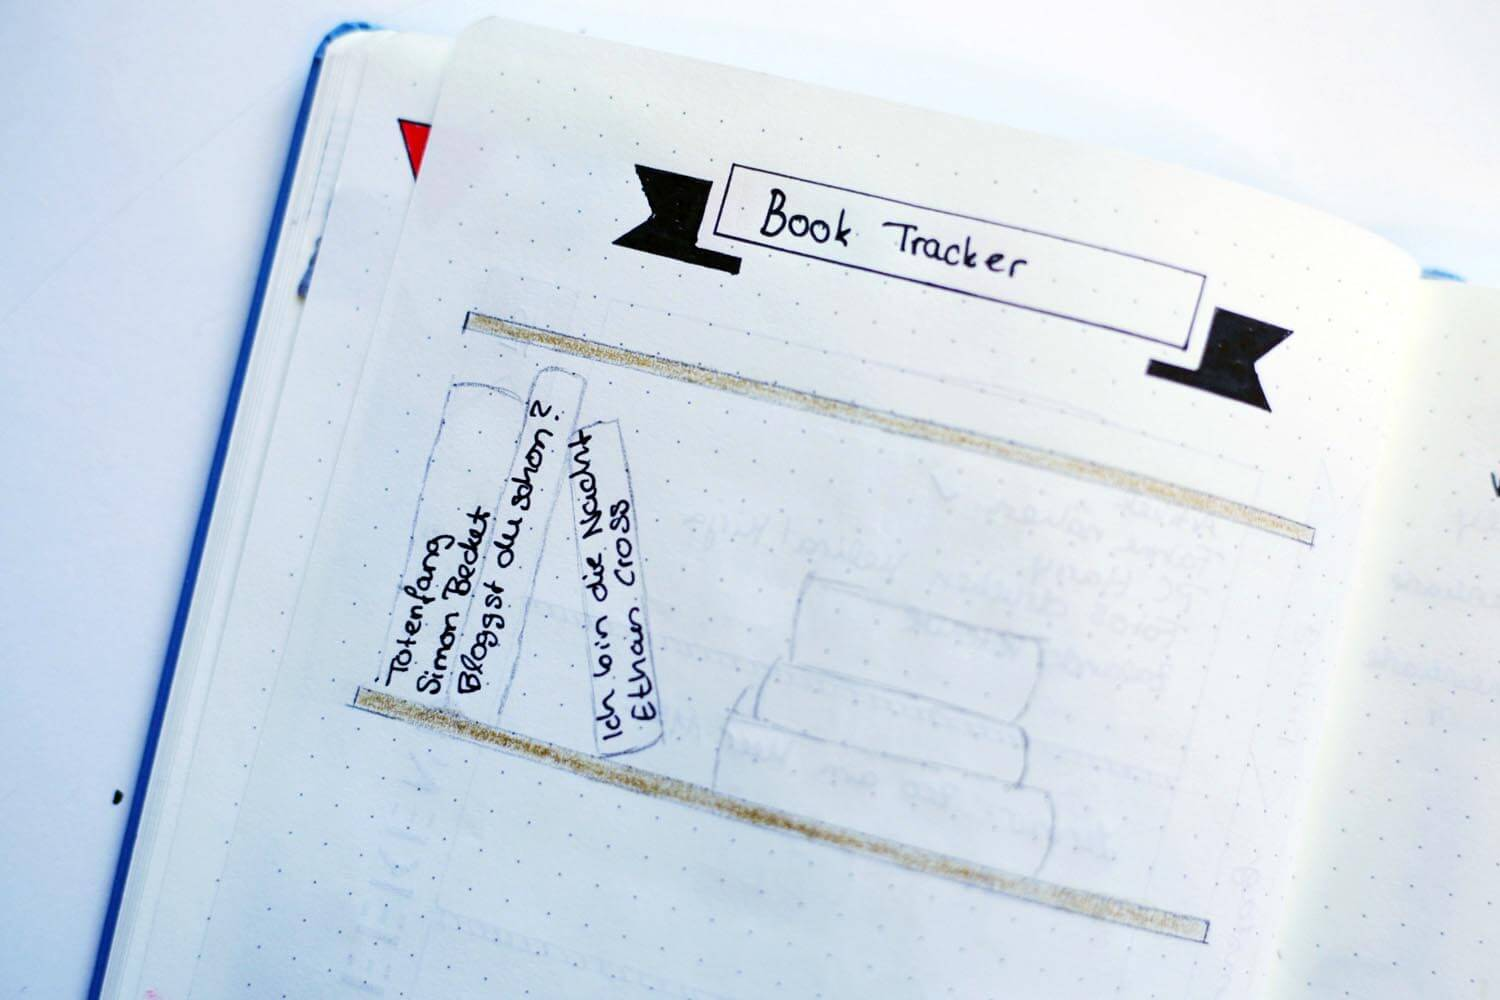 Der Book Tracker